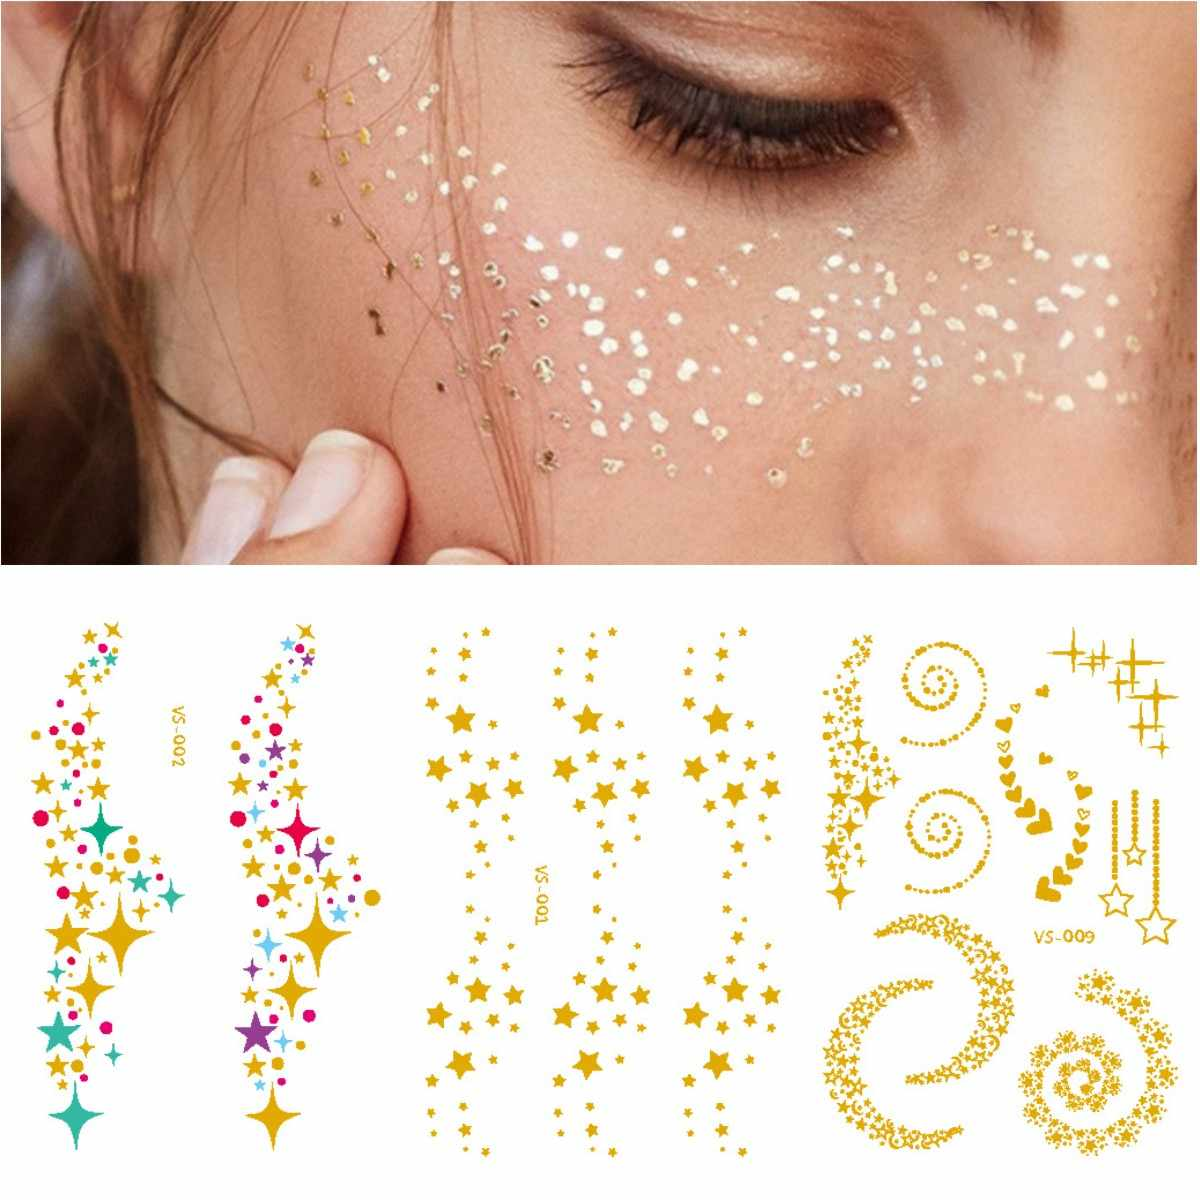 07dbea6013774 1pcs Bronzing Face Makeup Tattoo Personality Disposable Gold Tattoos  Stickers Waterproof Metal Beauty Freckles Flash Body